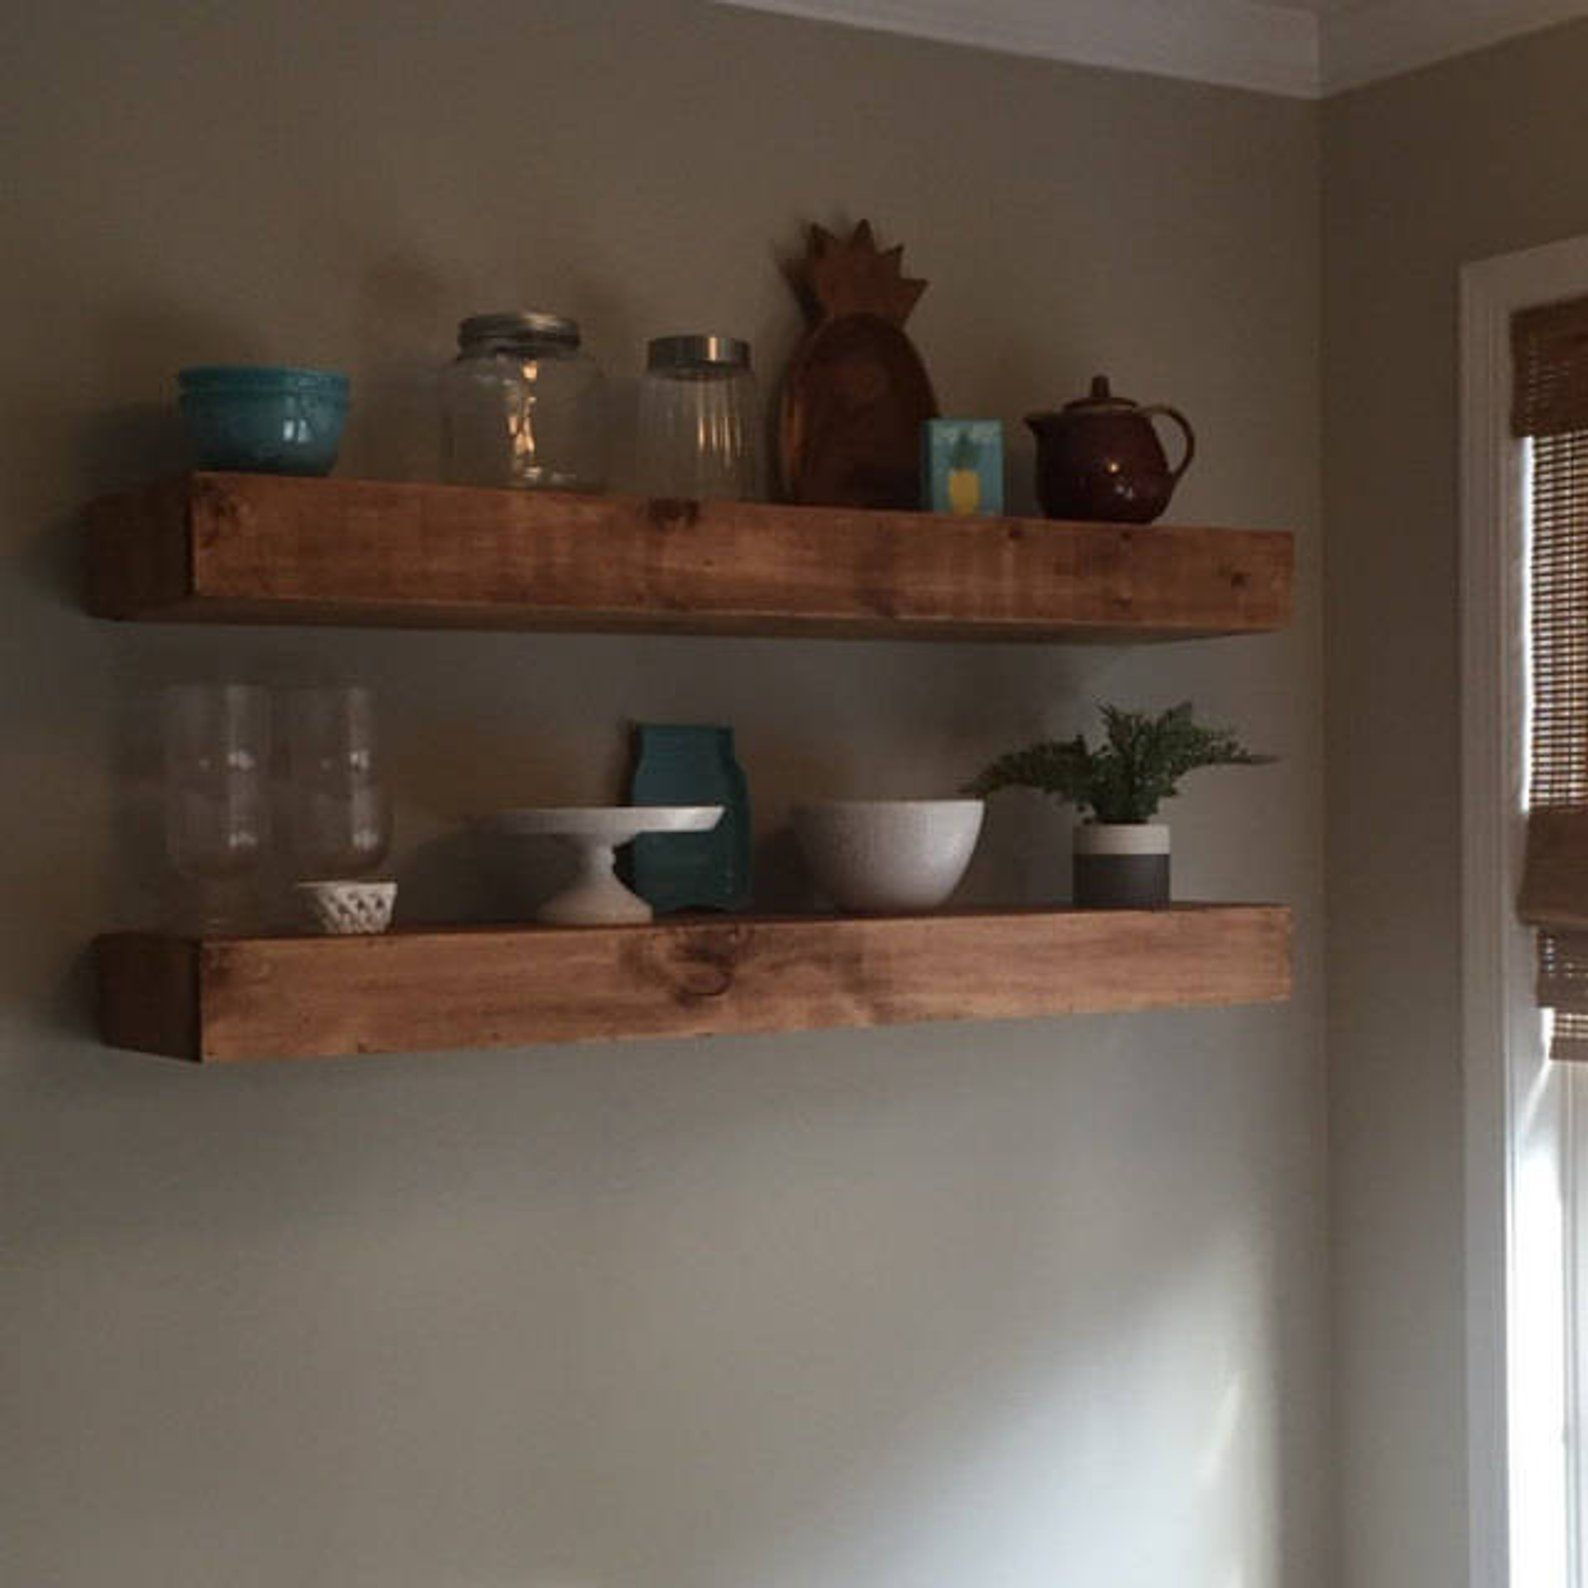 Wood Floating Shelves 12 Inches Deep Rustic Shelf Etsy Wood Floating Shelves Floating Shelves Rustic Shelves